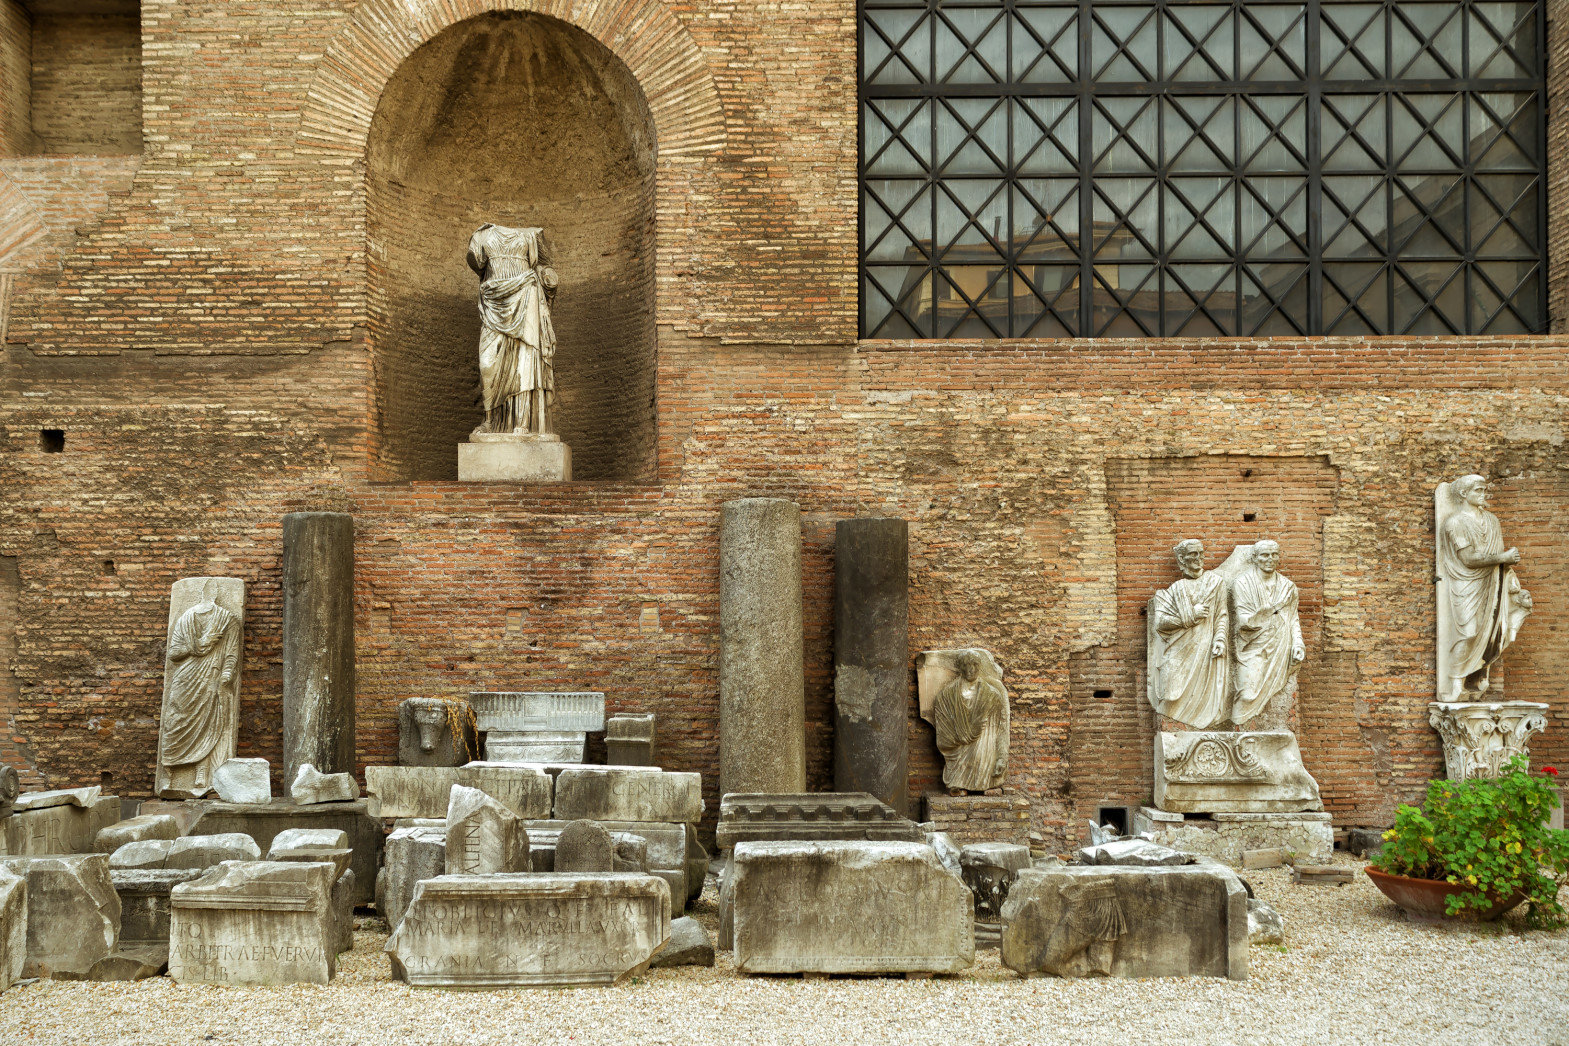 Ruins of the Baths of Diocletian (Thermae Diocletiani), Rome, Italy.